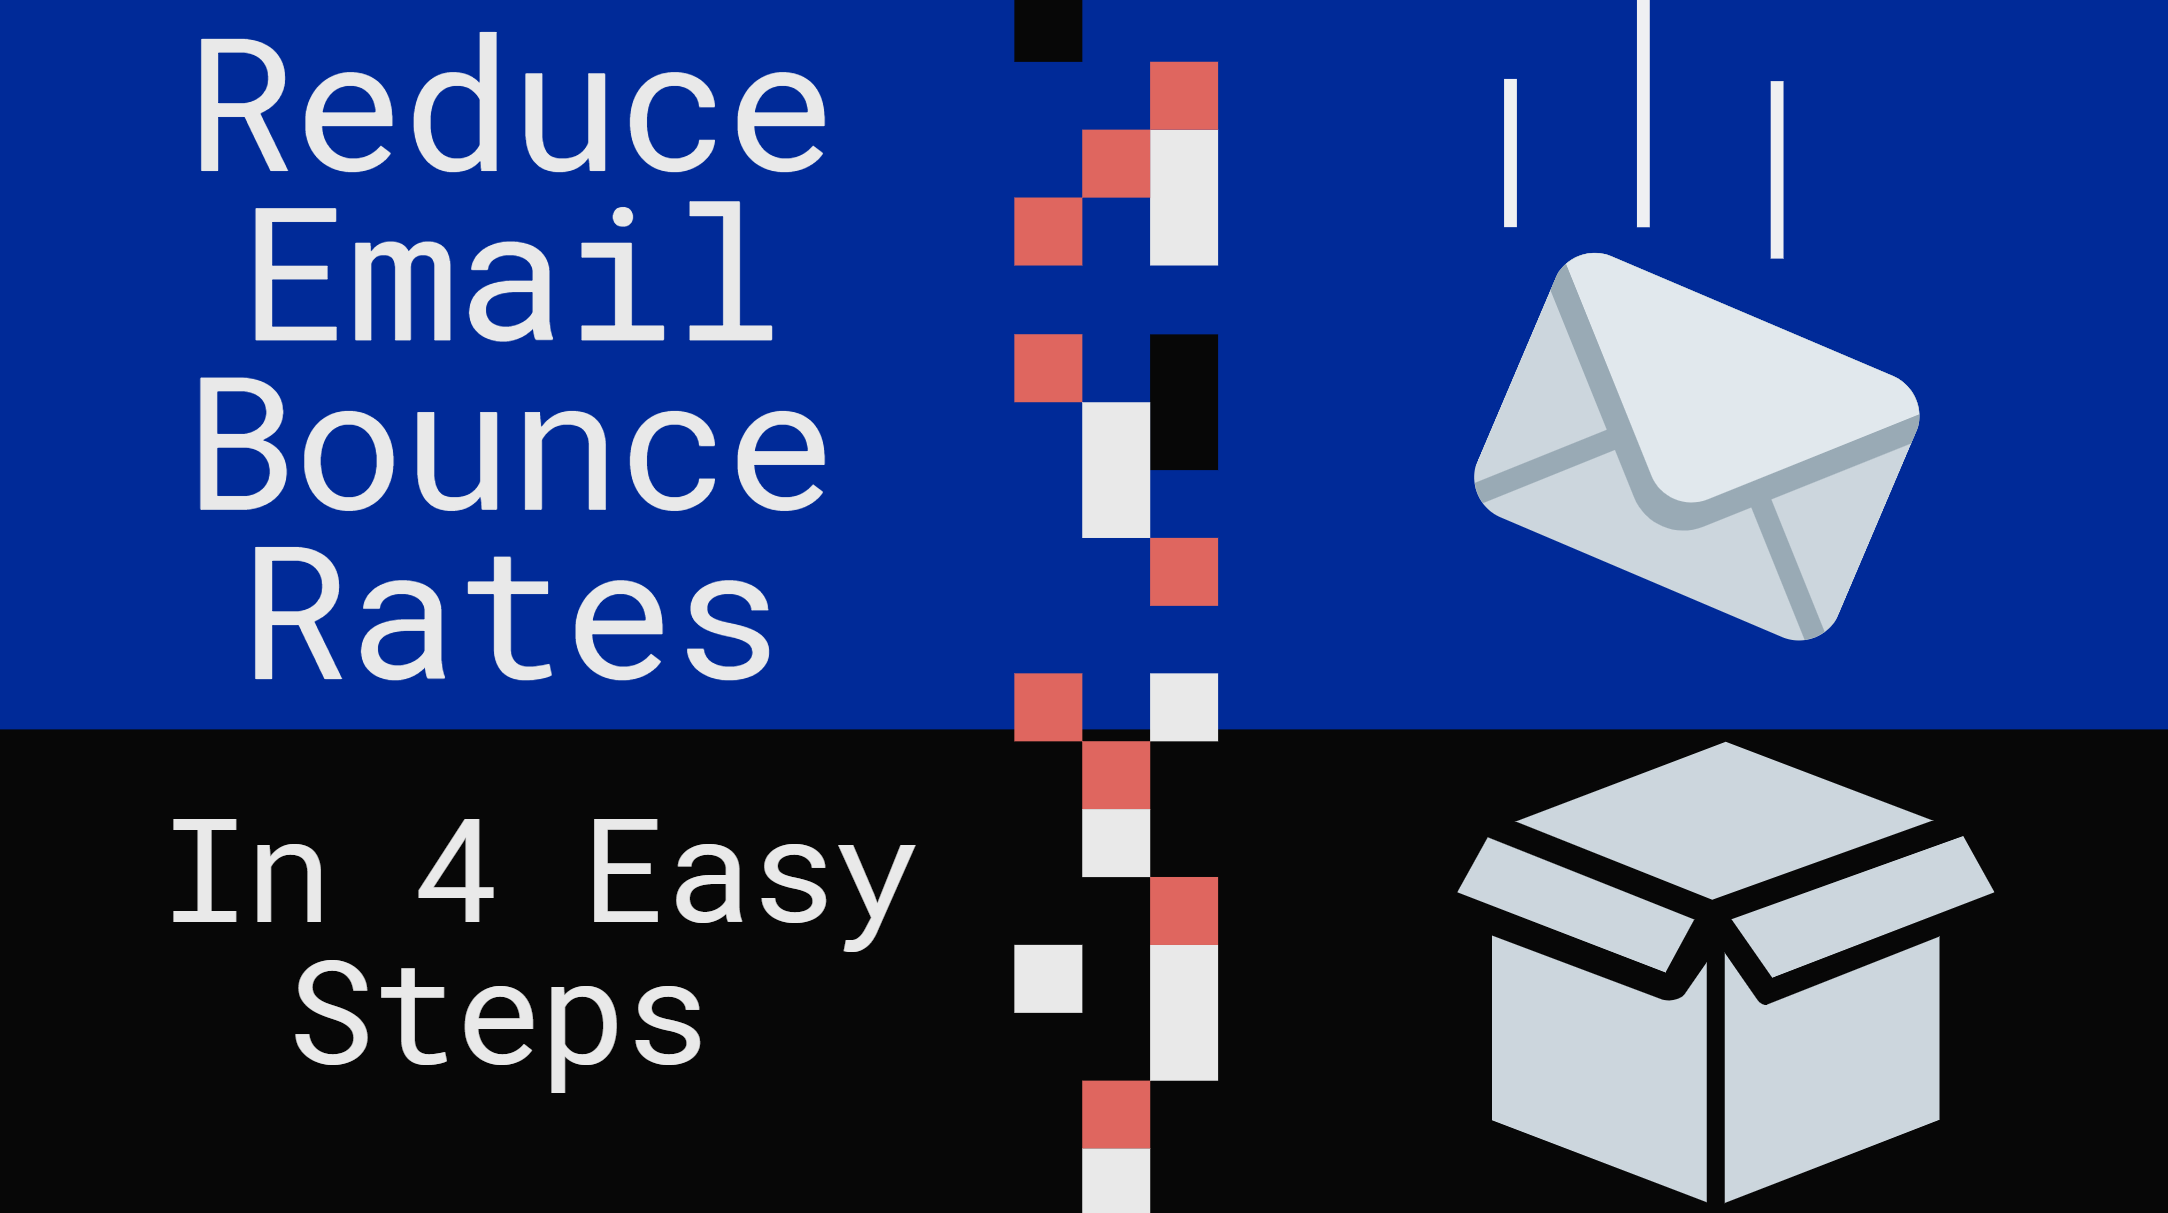 How To Reduce Email Bounce Rates [4 Easy Steps]